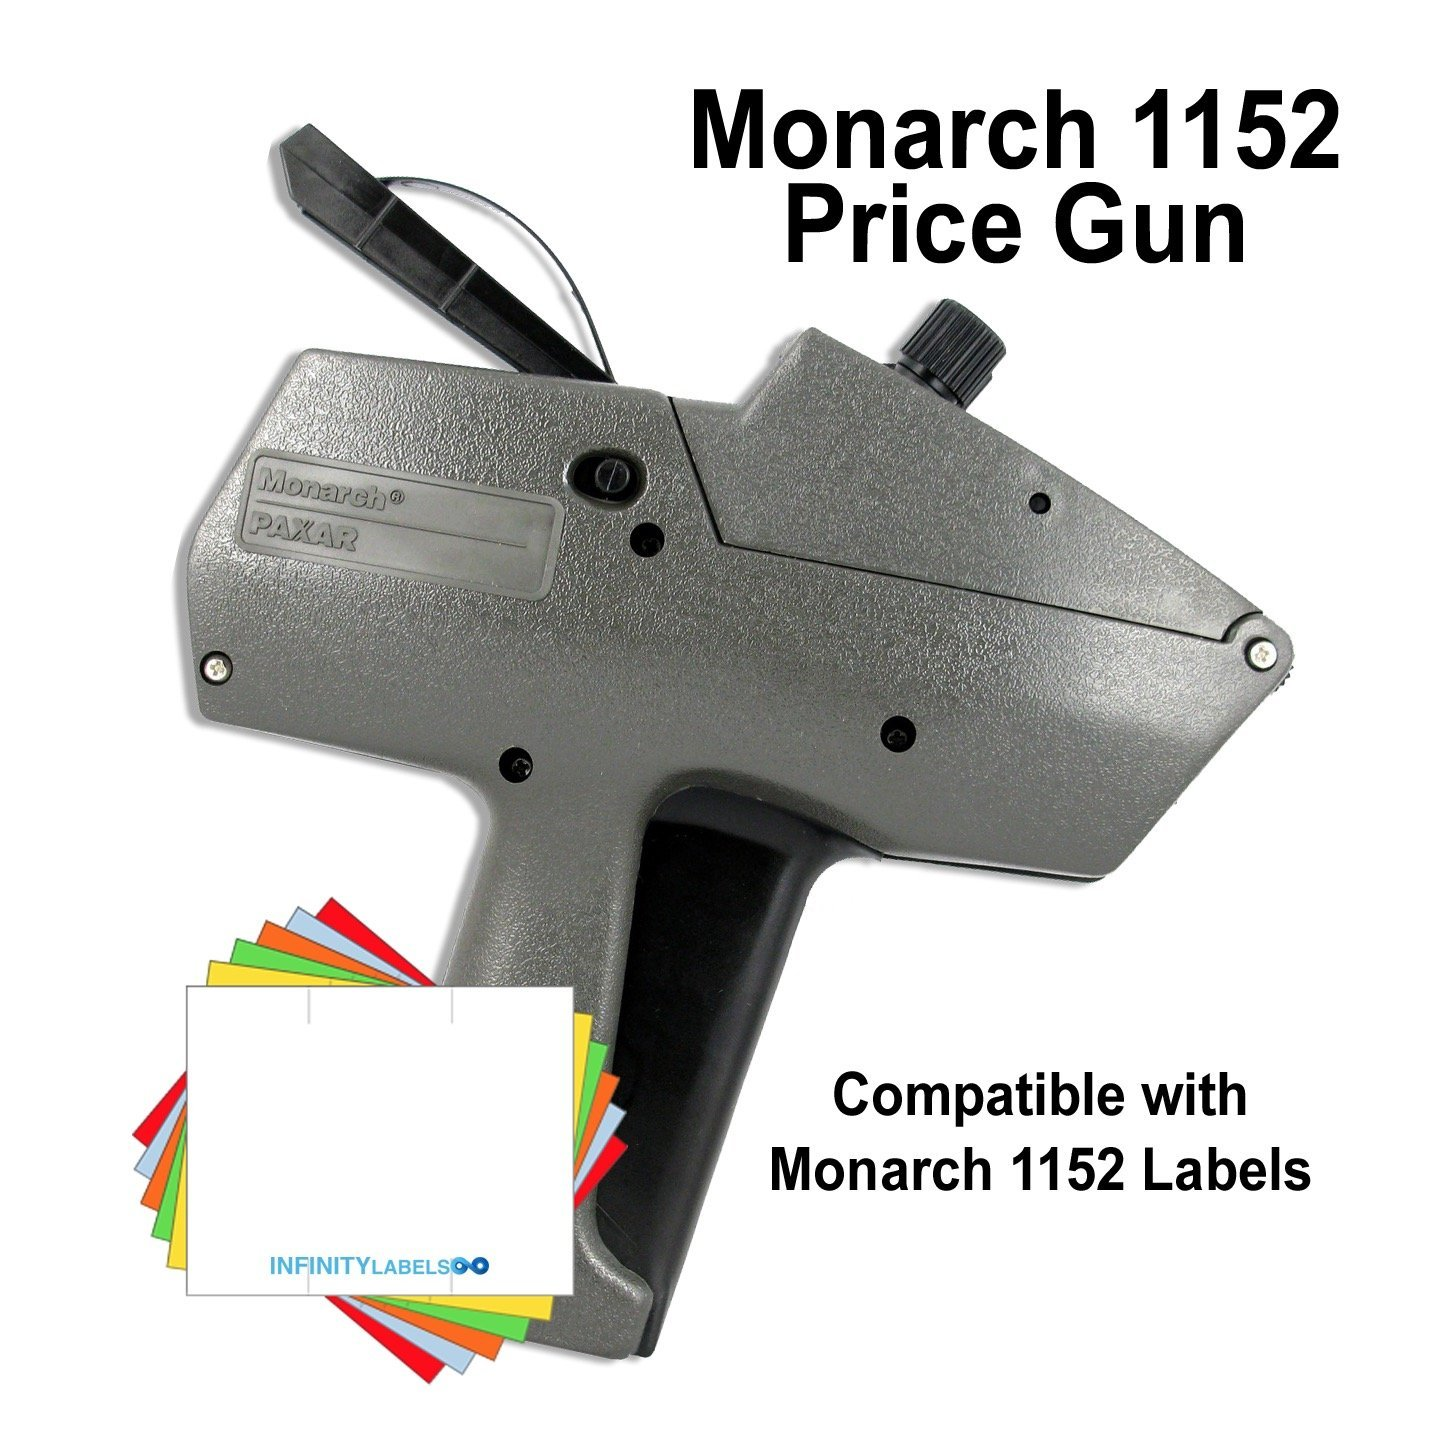 Monarch Price Guns (10): 1152 - BULK PRICING [2 Lines / 12 Top & 7 Bottom BOLD characters]